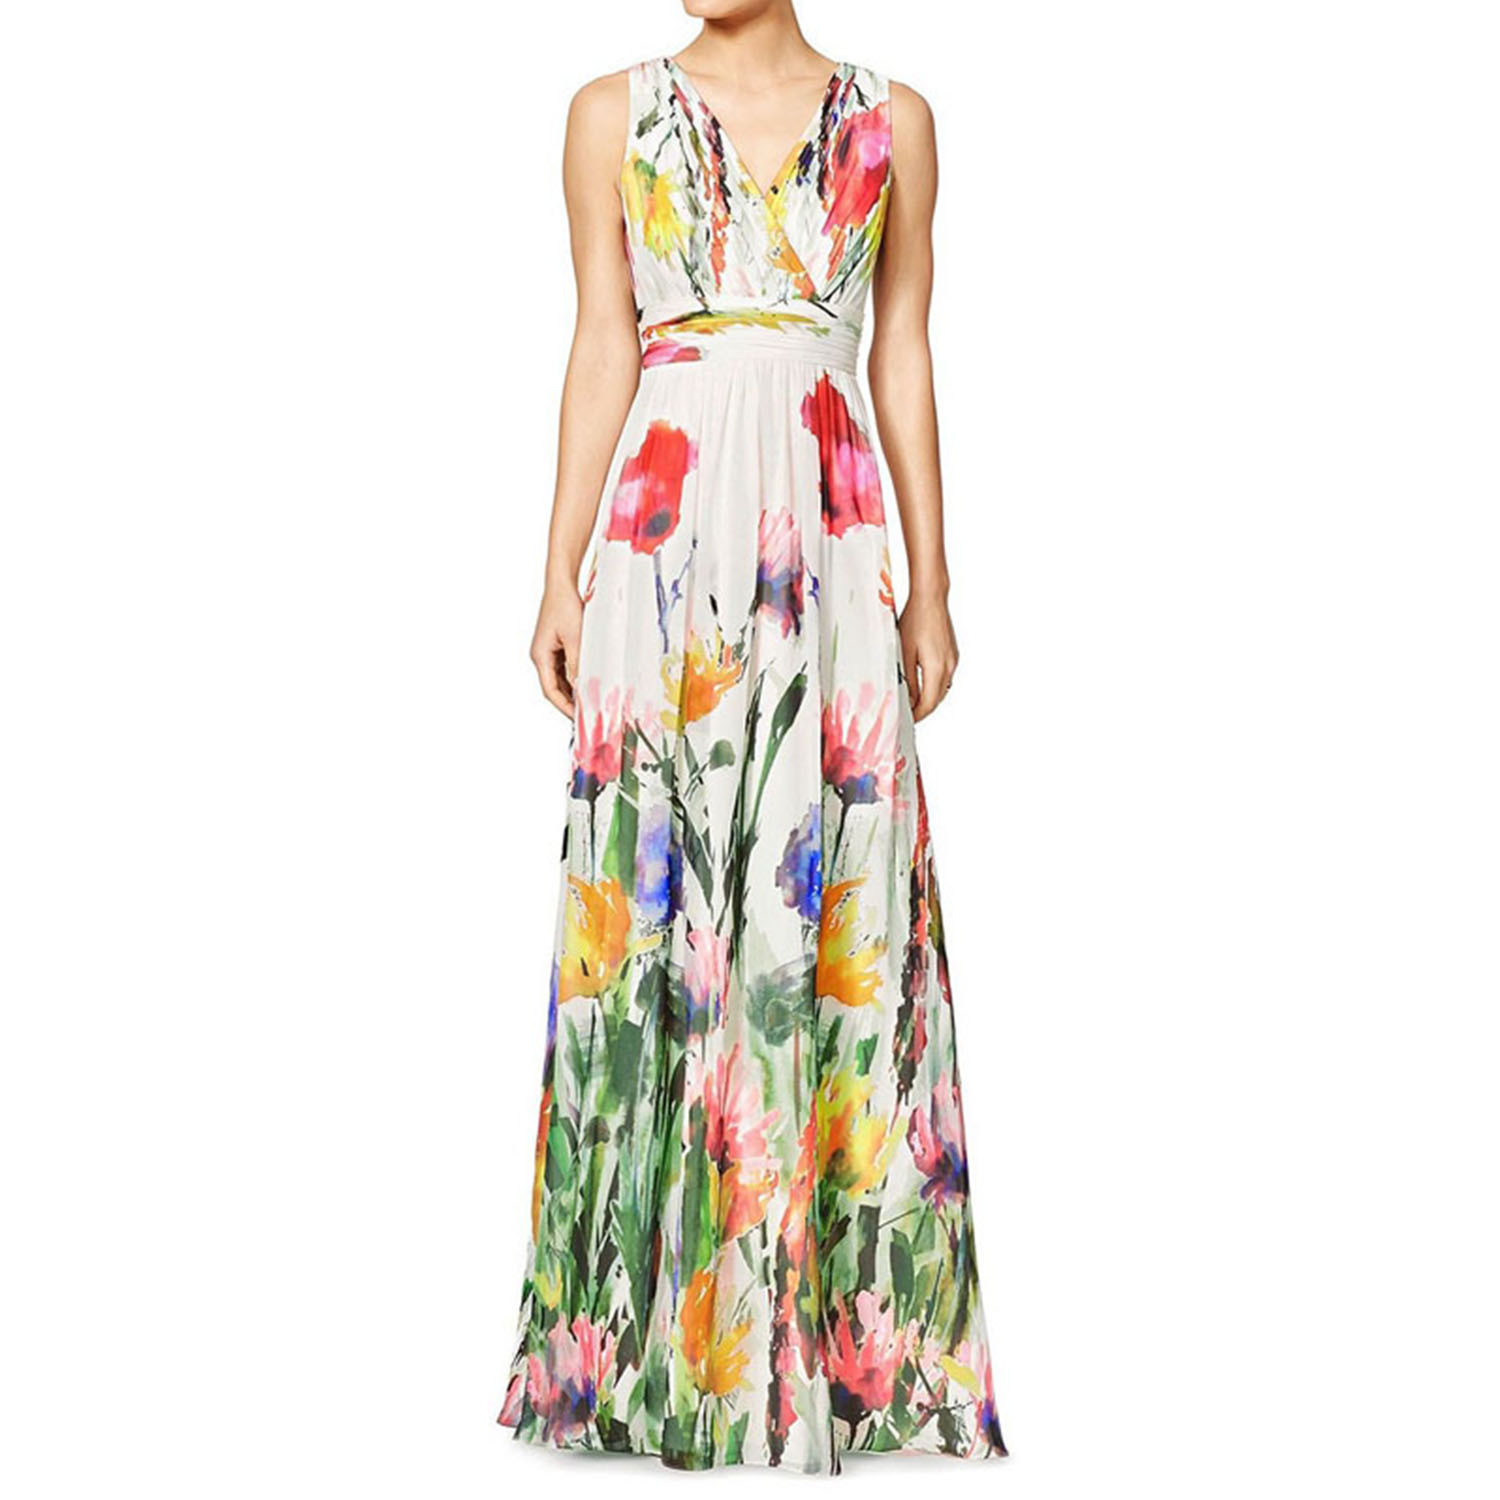 Woman Sleeveless Crossover V Neck Floral Print Empire Waist font b Maxi b font font b